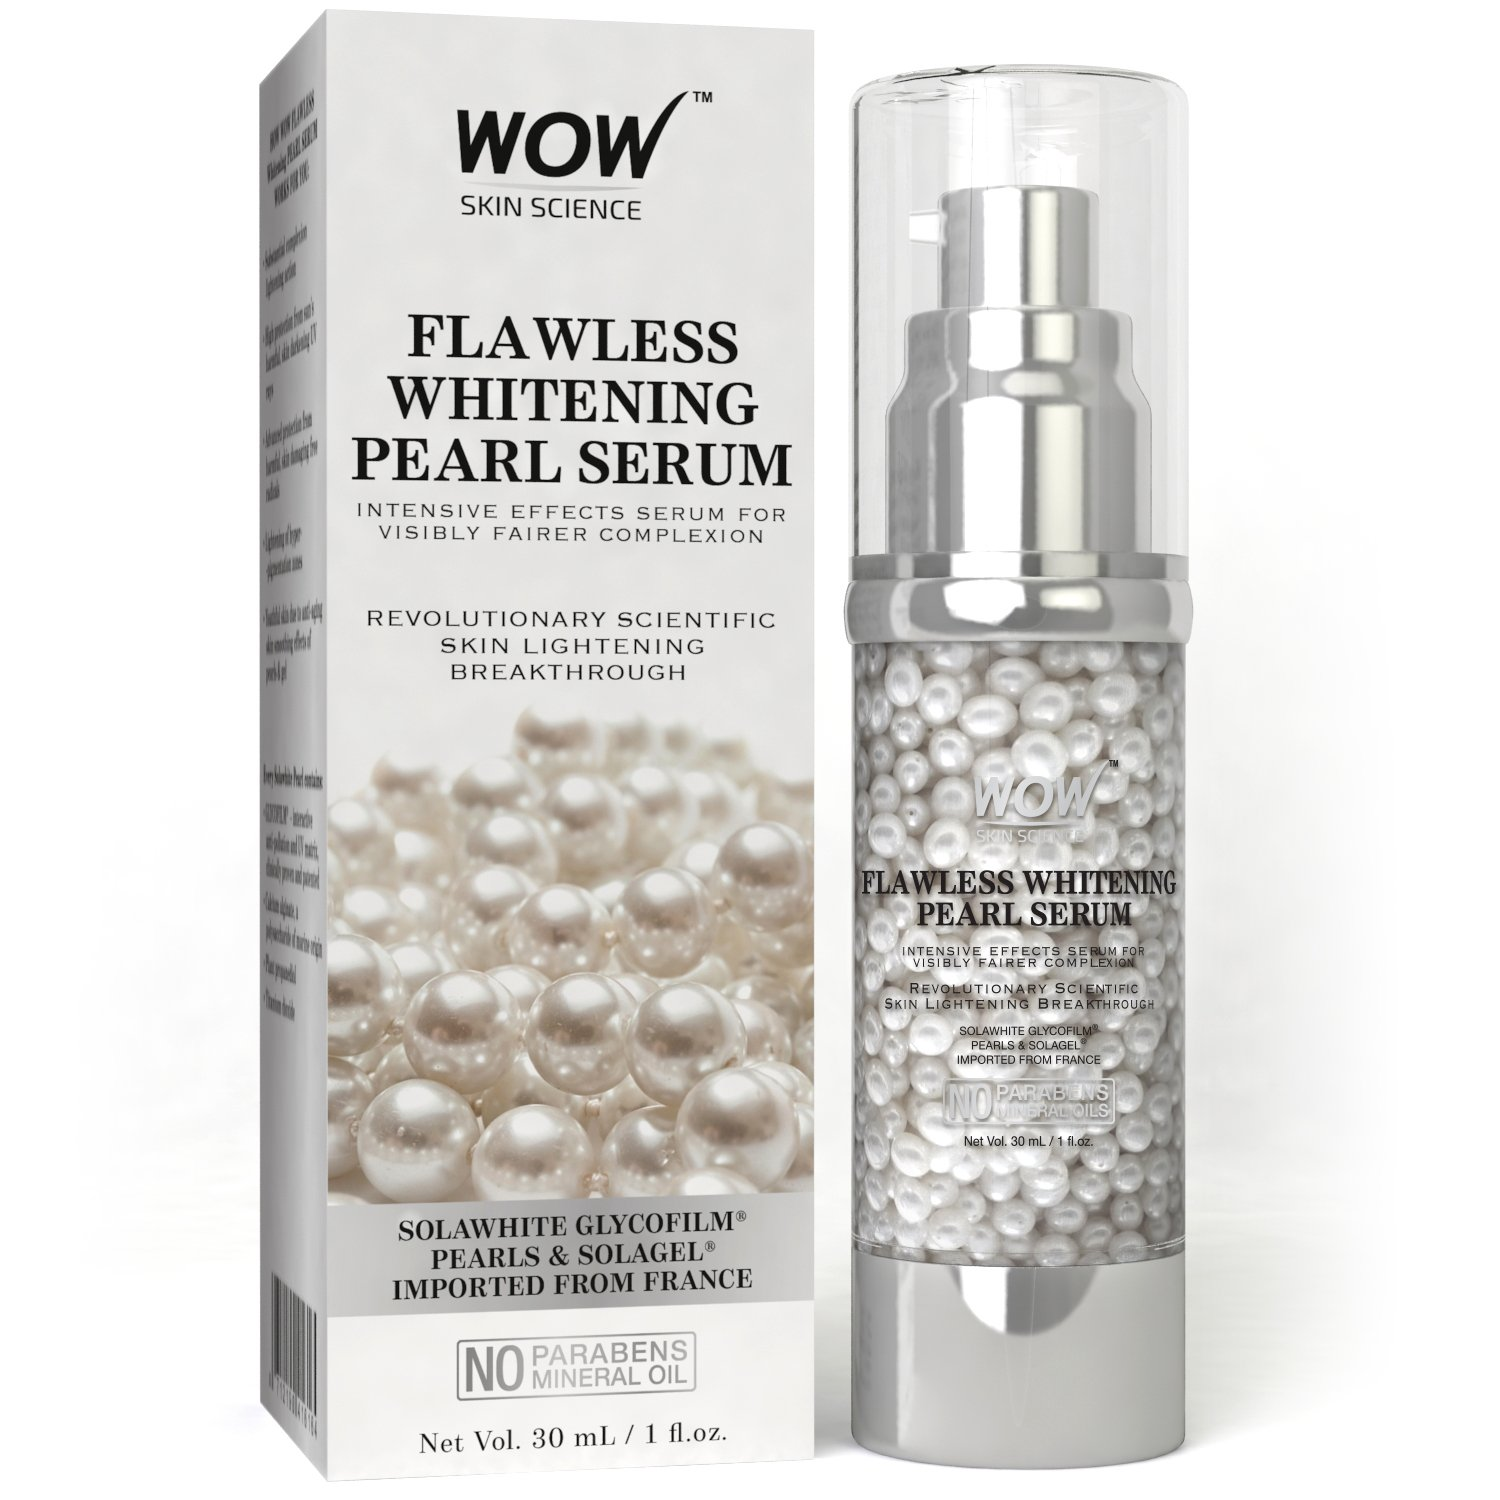 WOW Flawless Whitening No Parabens & Mineral Oil Pearl Serum, 30mL